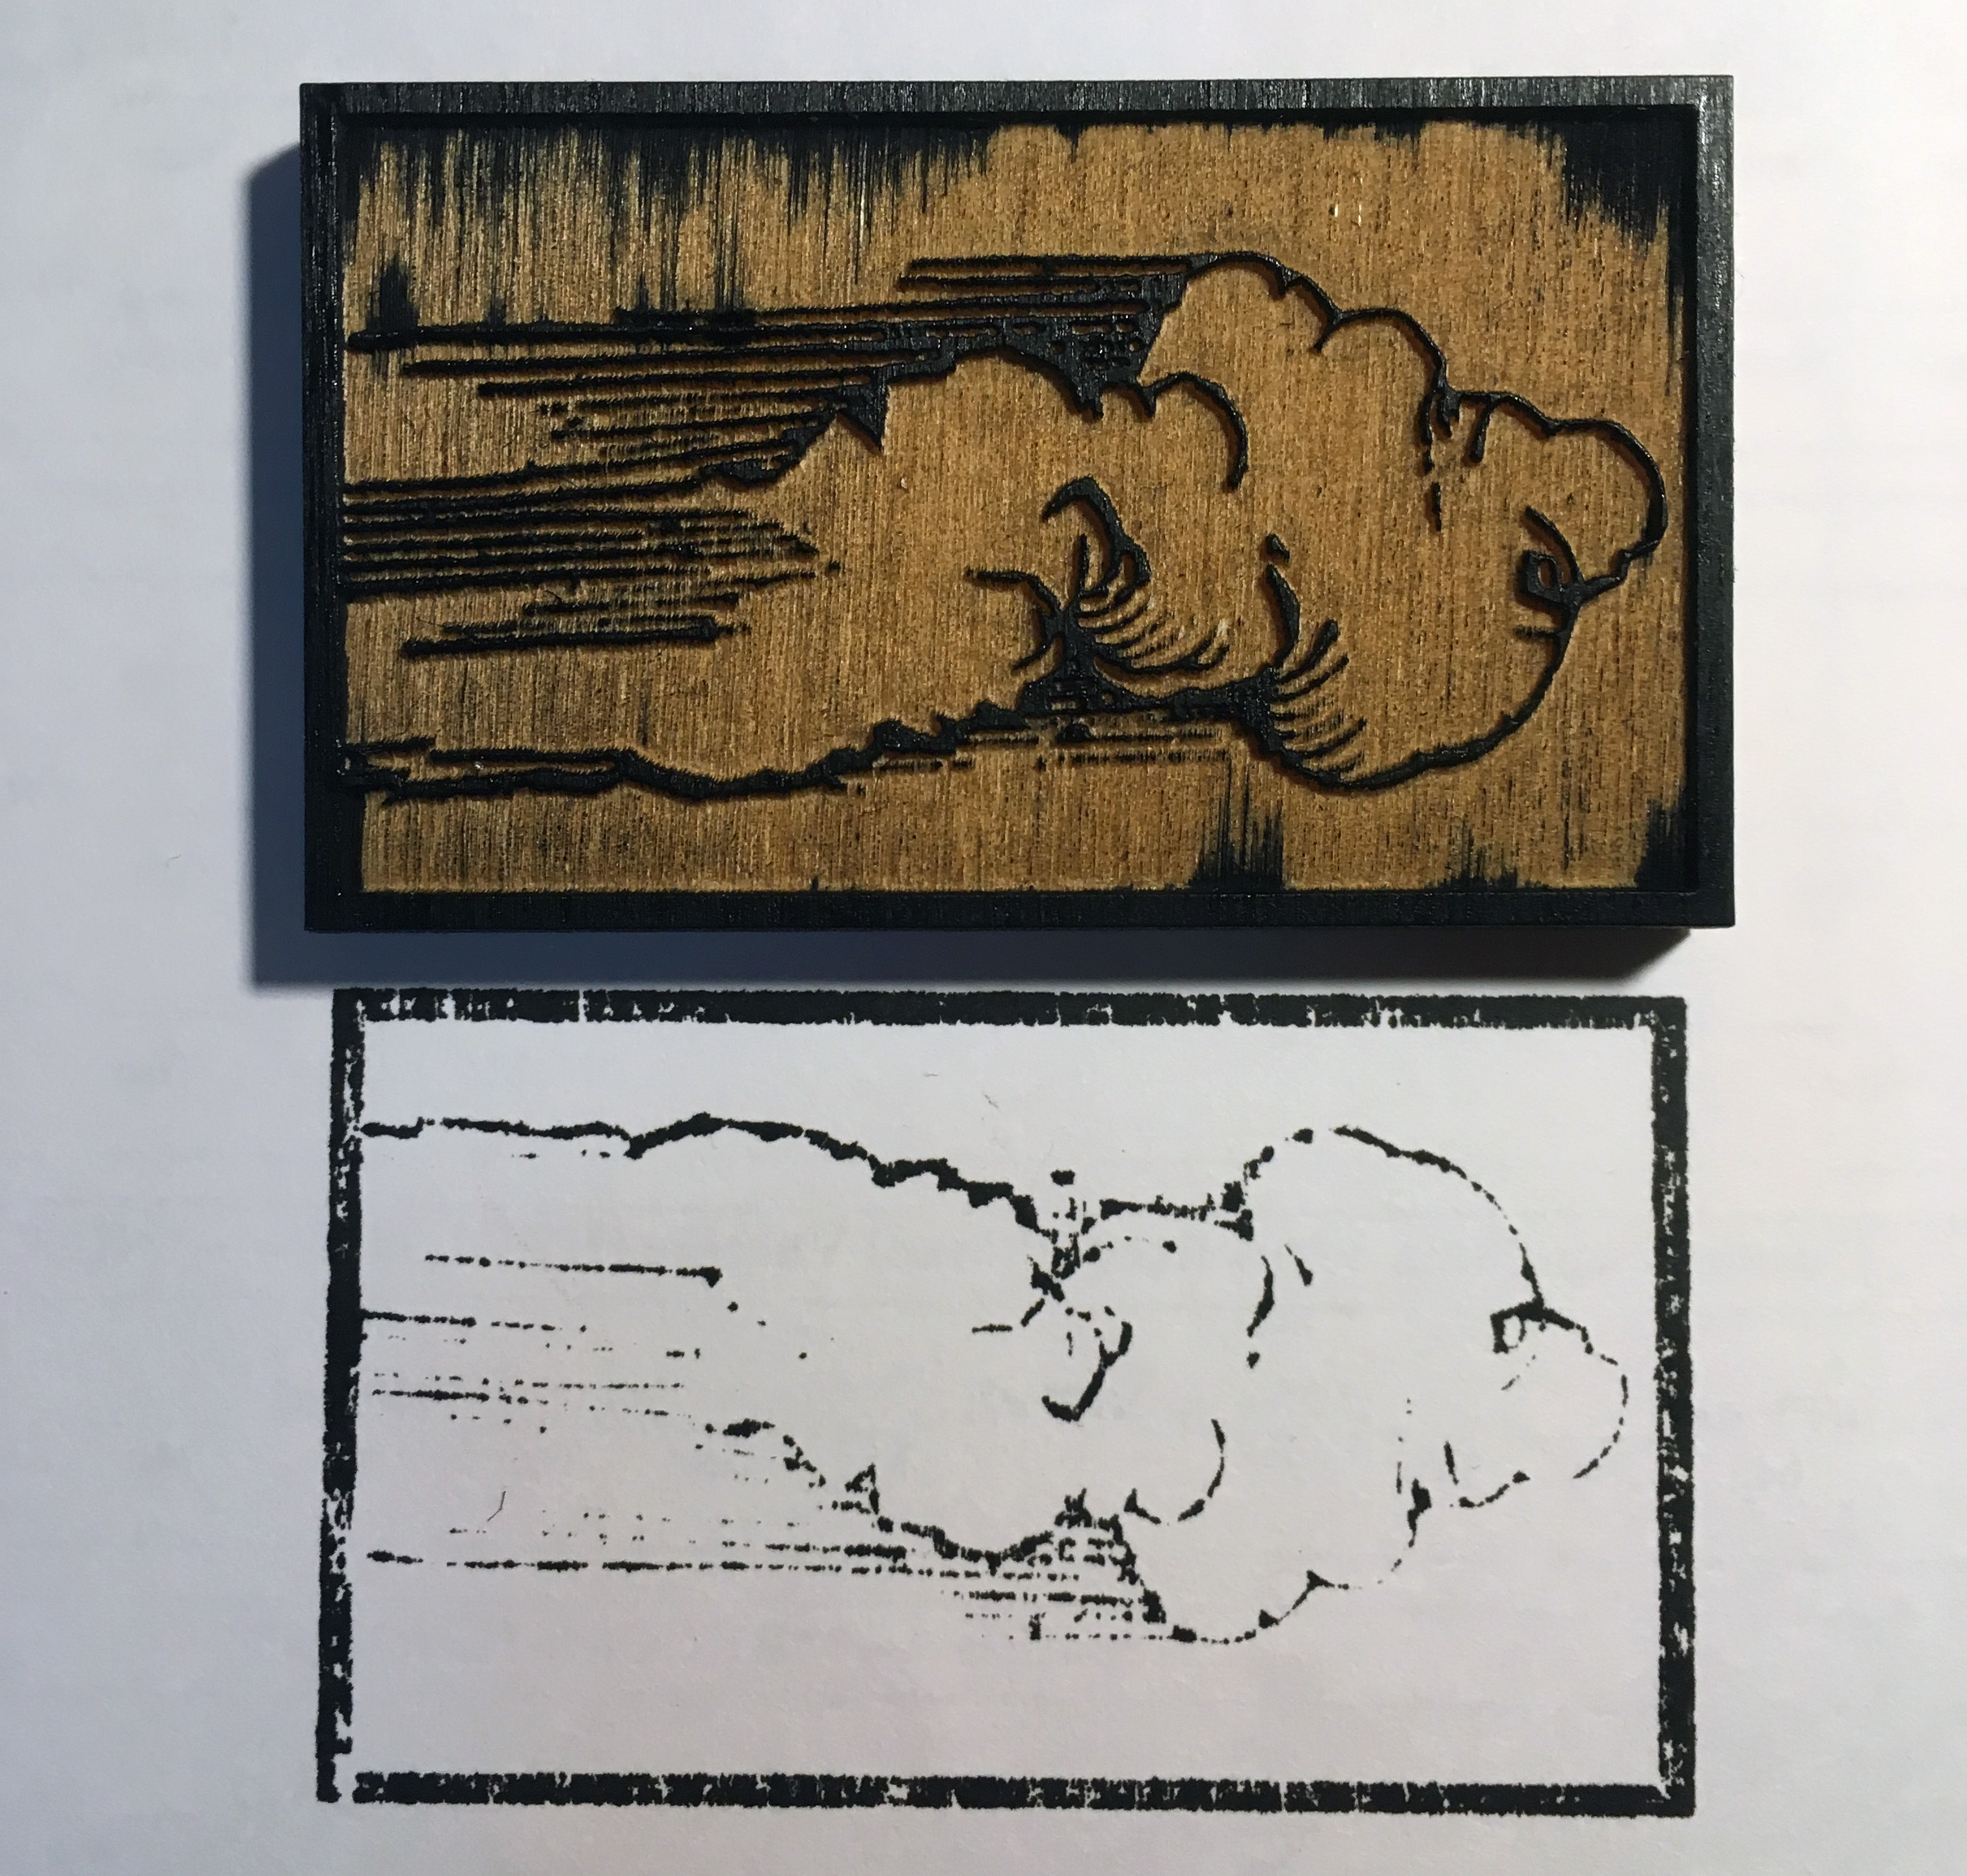 Chen's laser-cut woodblock of Dürer's cloud and a print she created from it